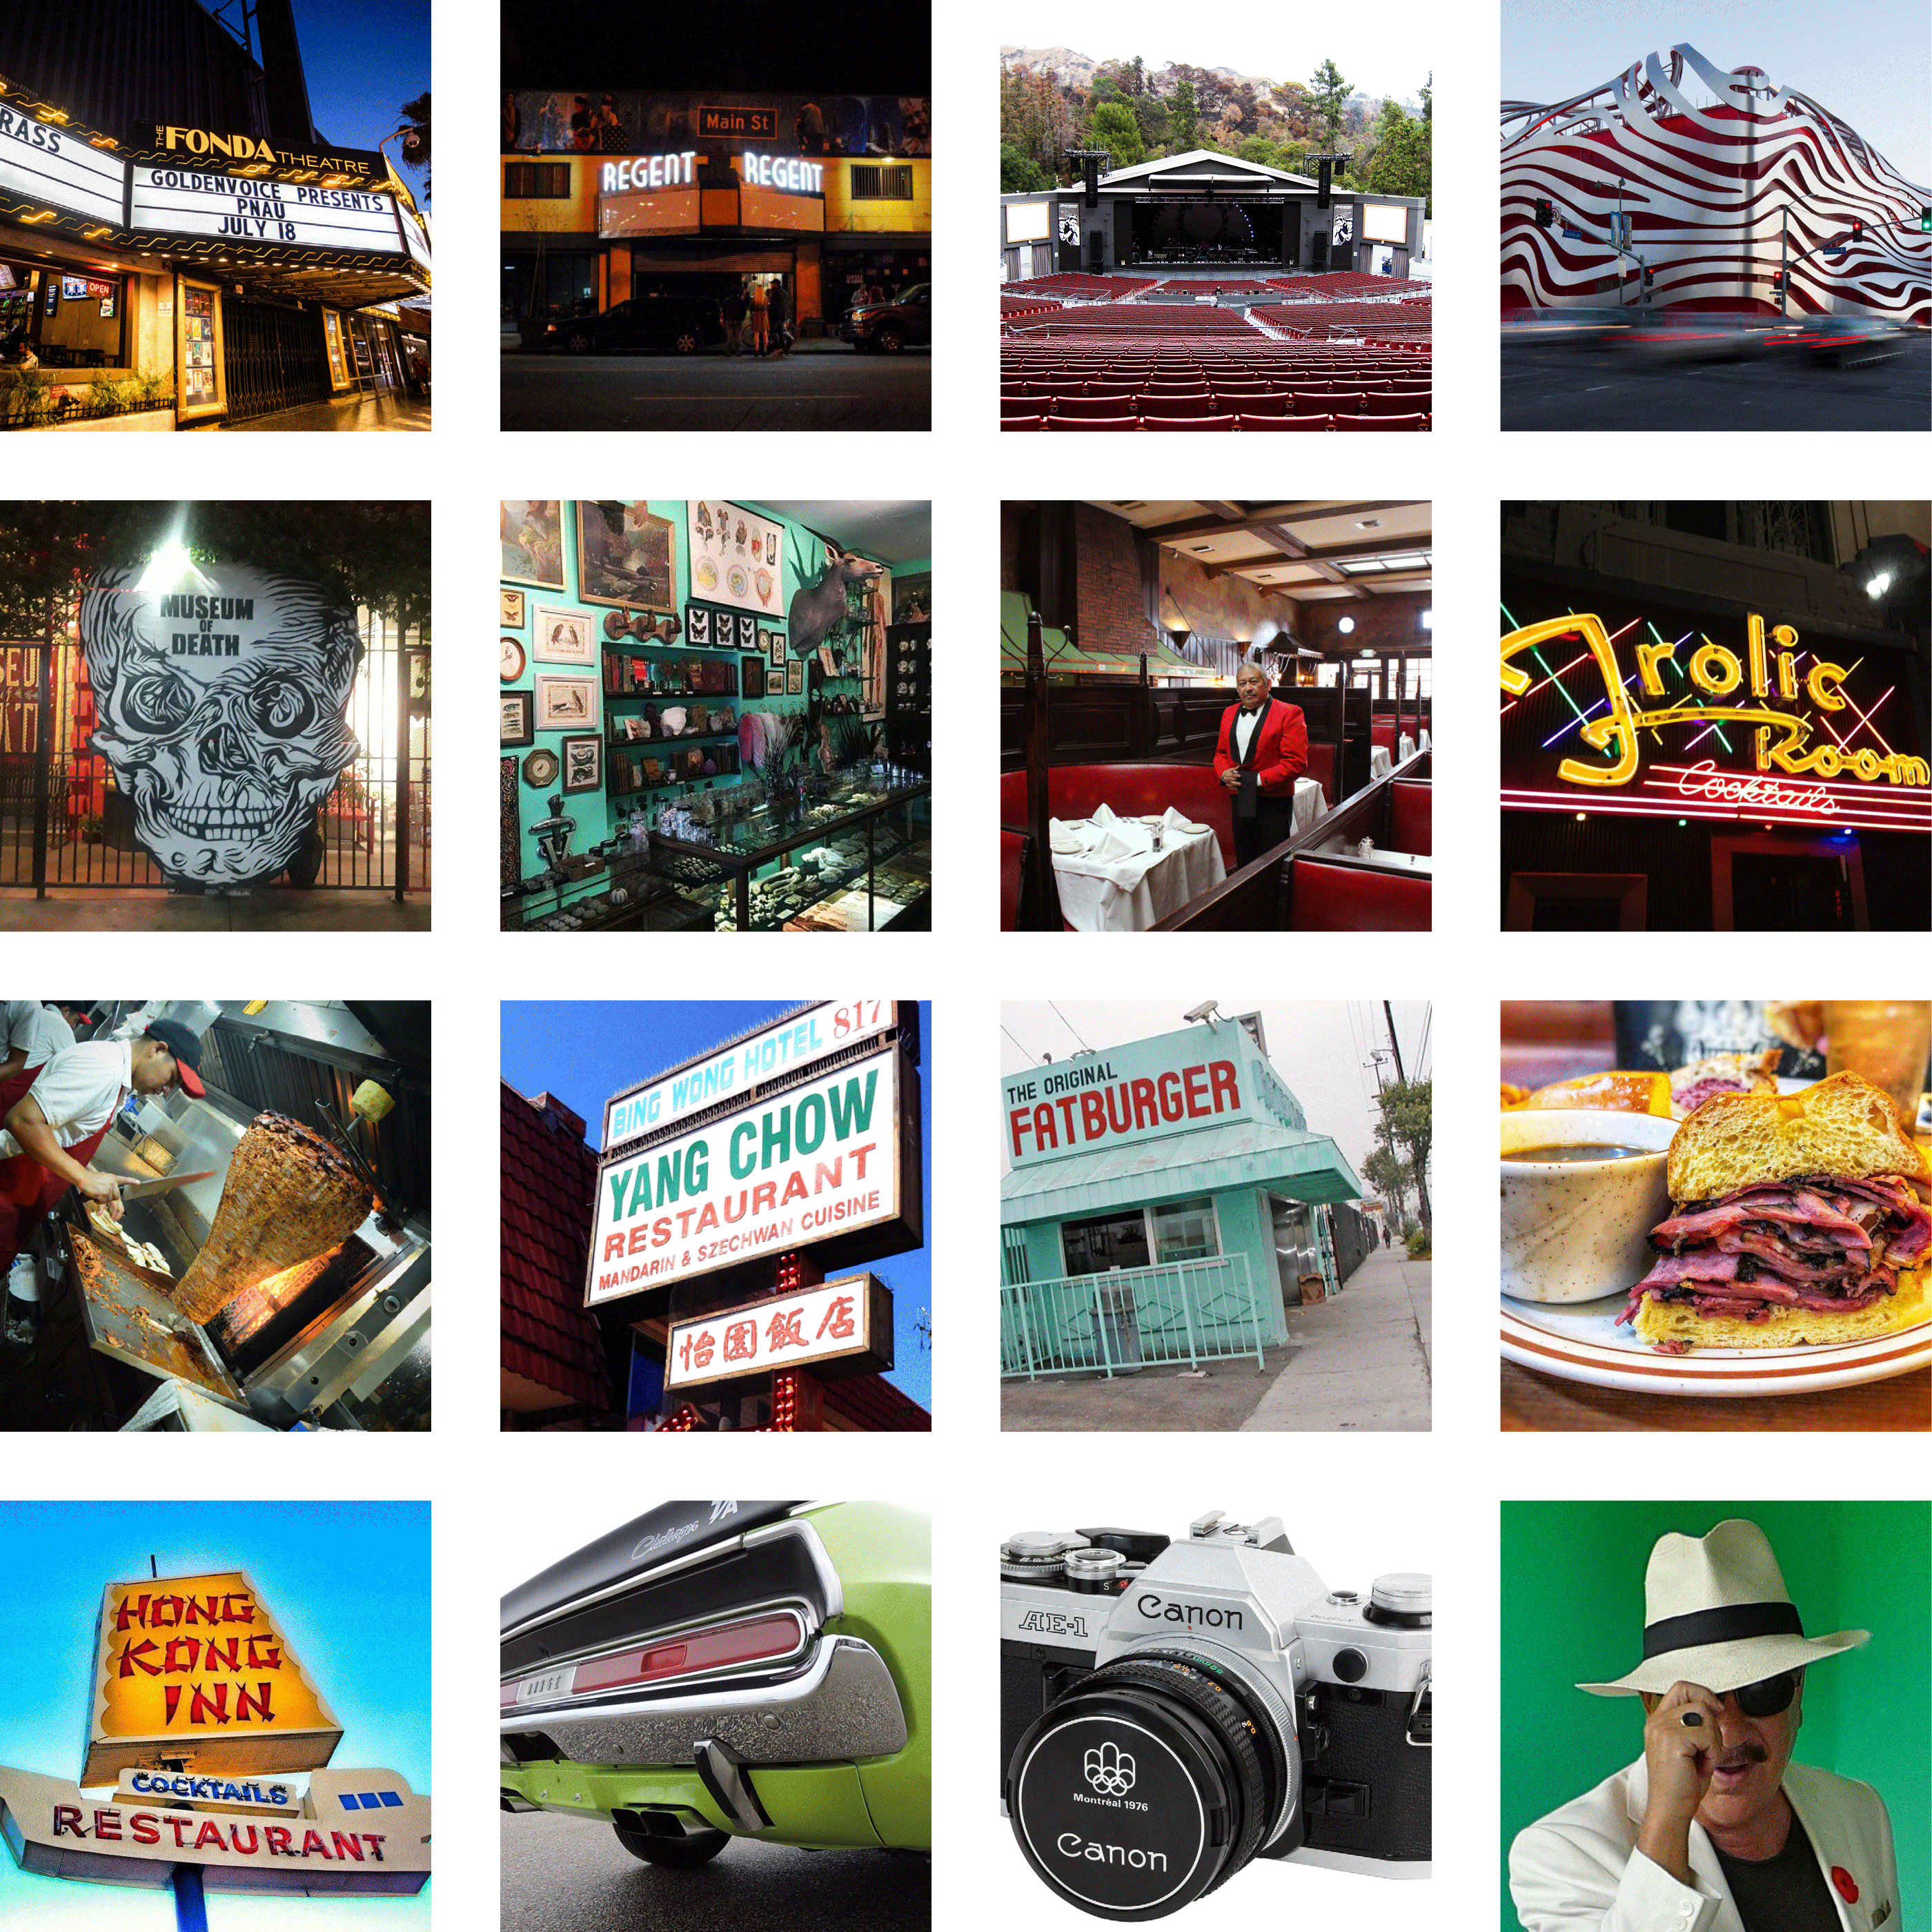 A collage of photos from locations around Los Angeles